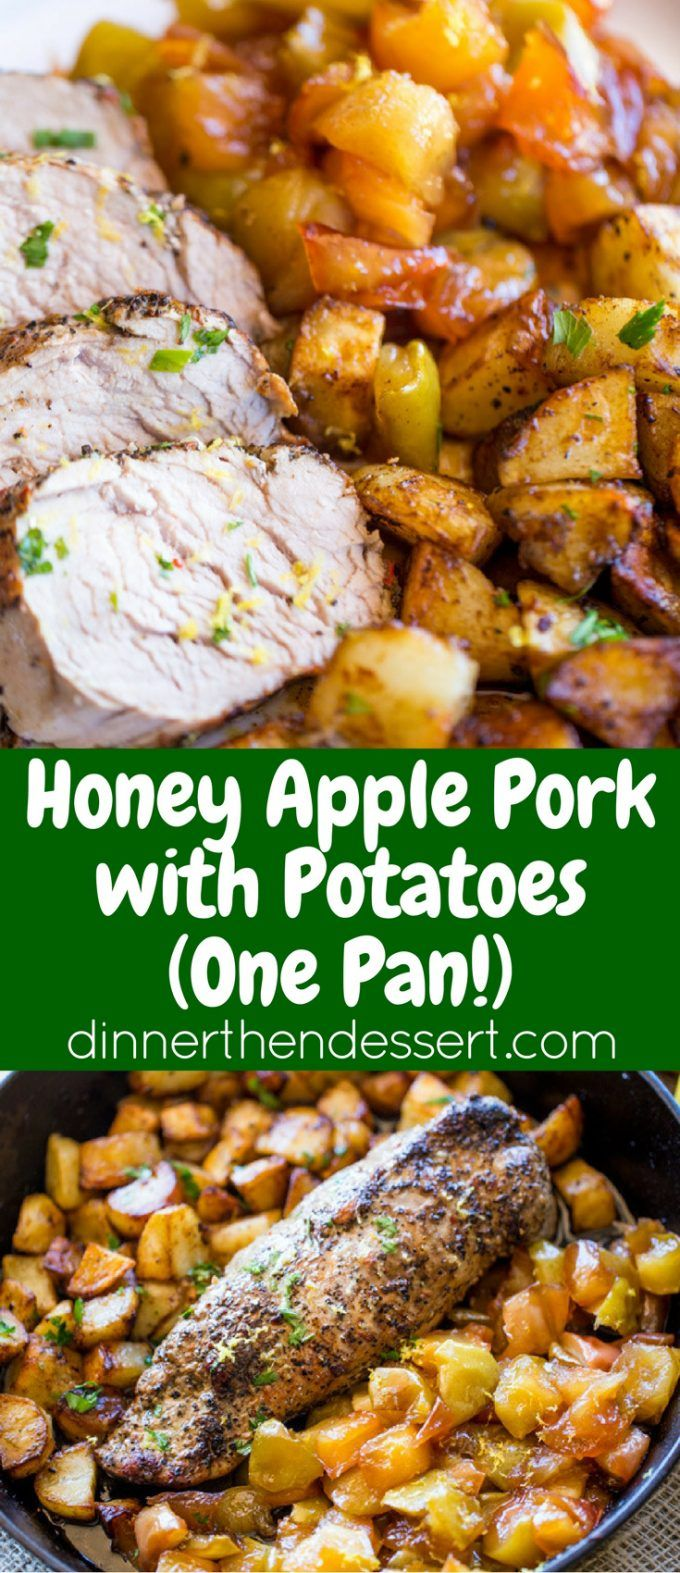 Honey Apple Pork with Potatoes made in a cast iron skillet is the perfect fall meal celebrating honey, apples, roasted potatoes with almost no cleanup and only 7 ingredients. ad CookingwithSmithfield @SmithfieldFoods